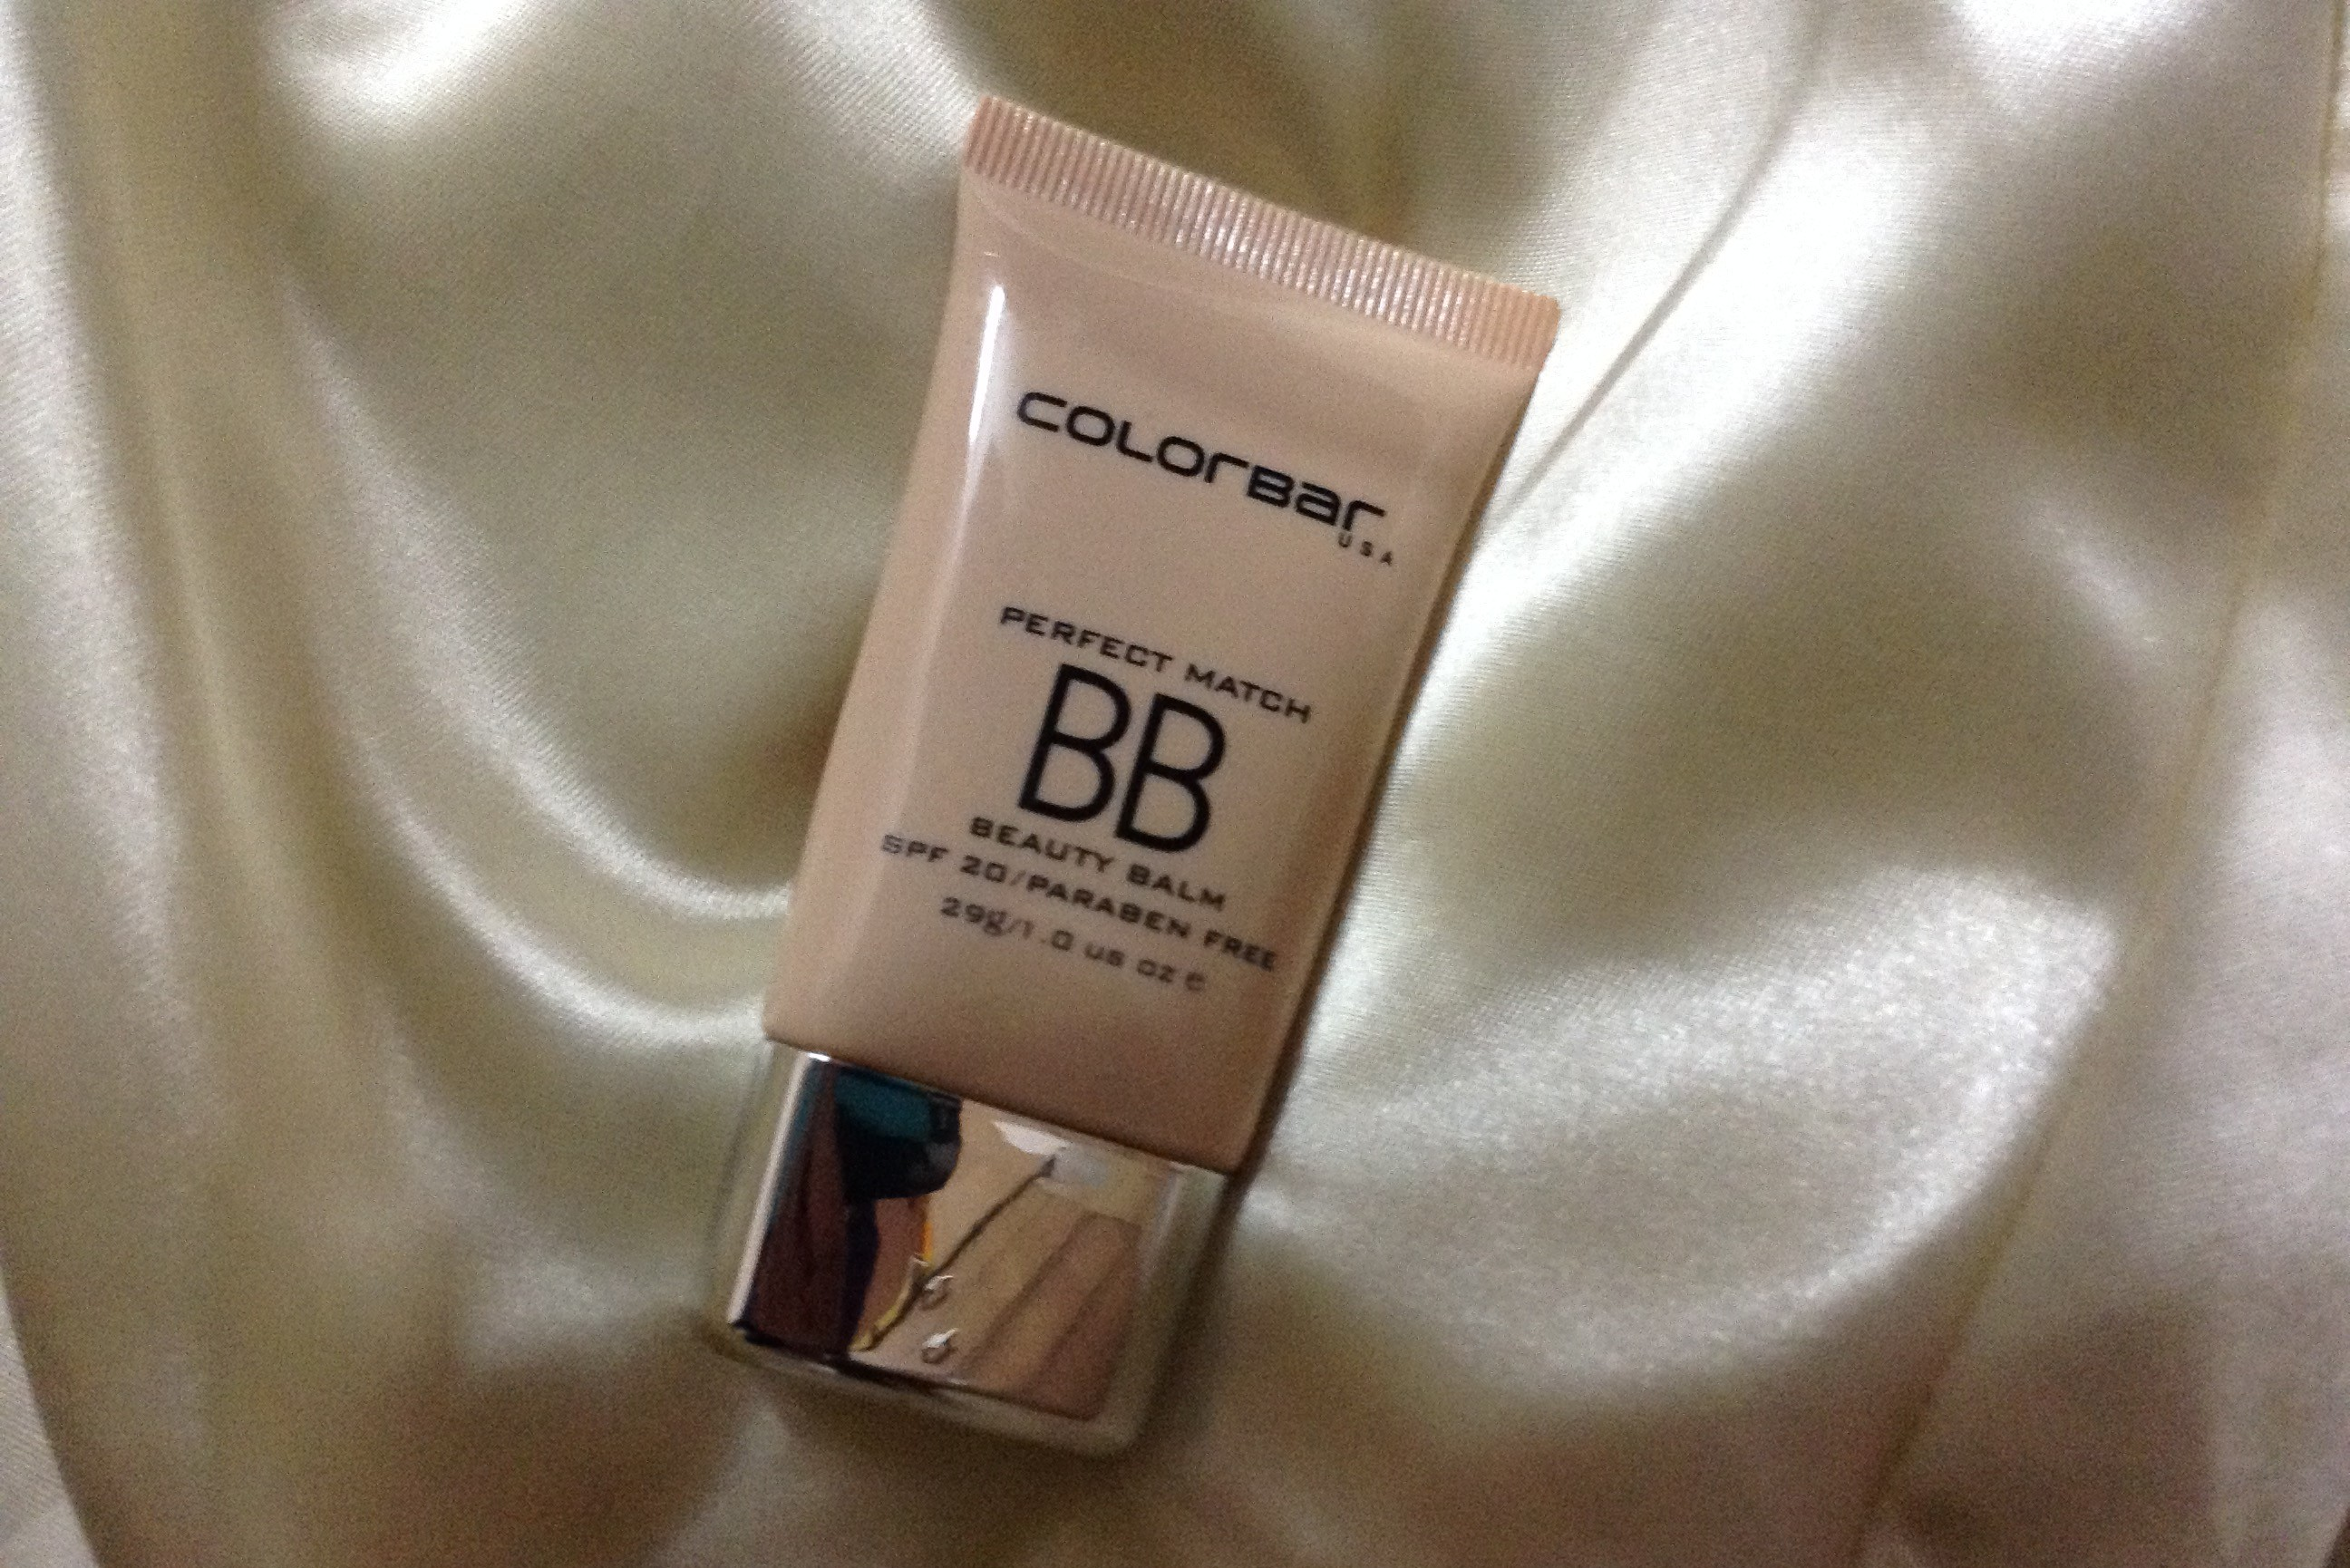 Colorbar Perfect Match BB Cream Review